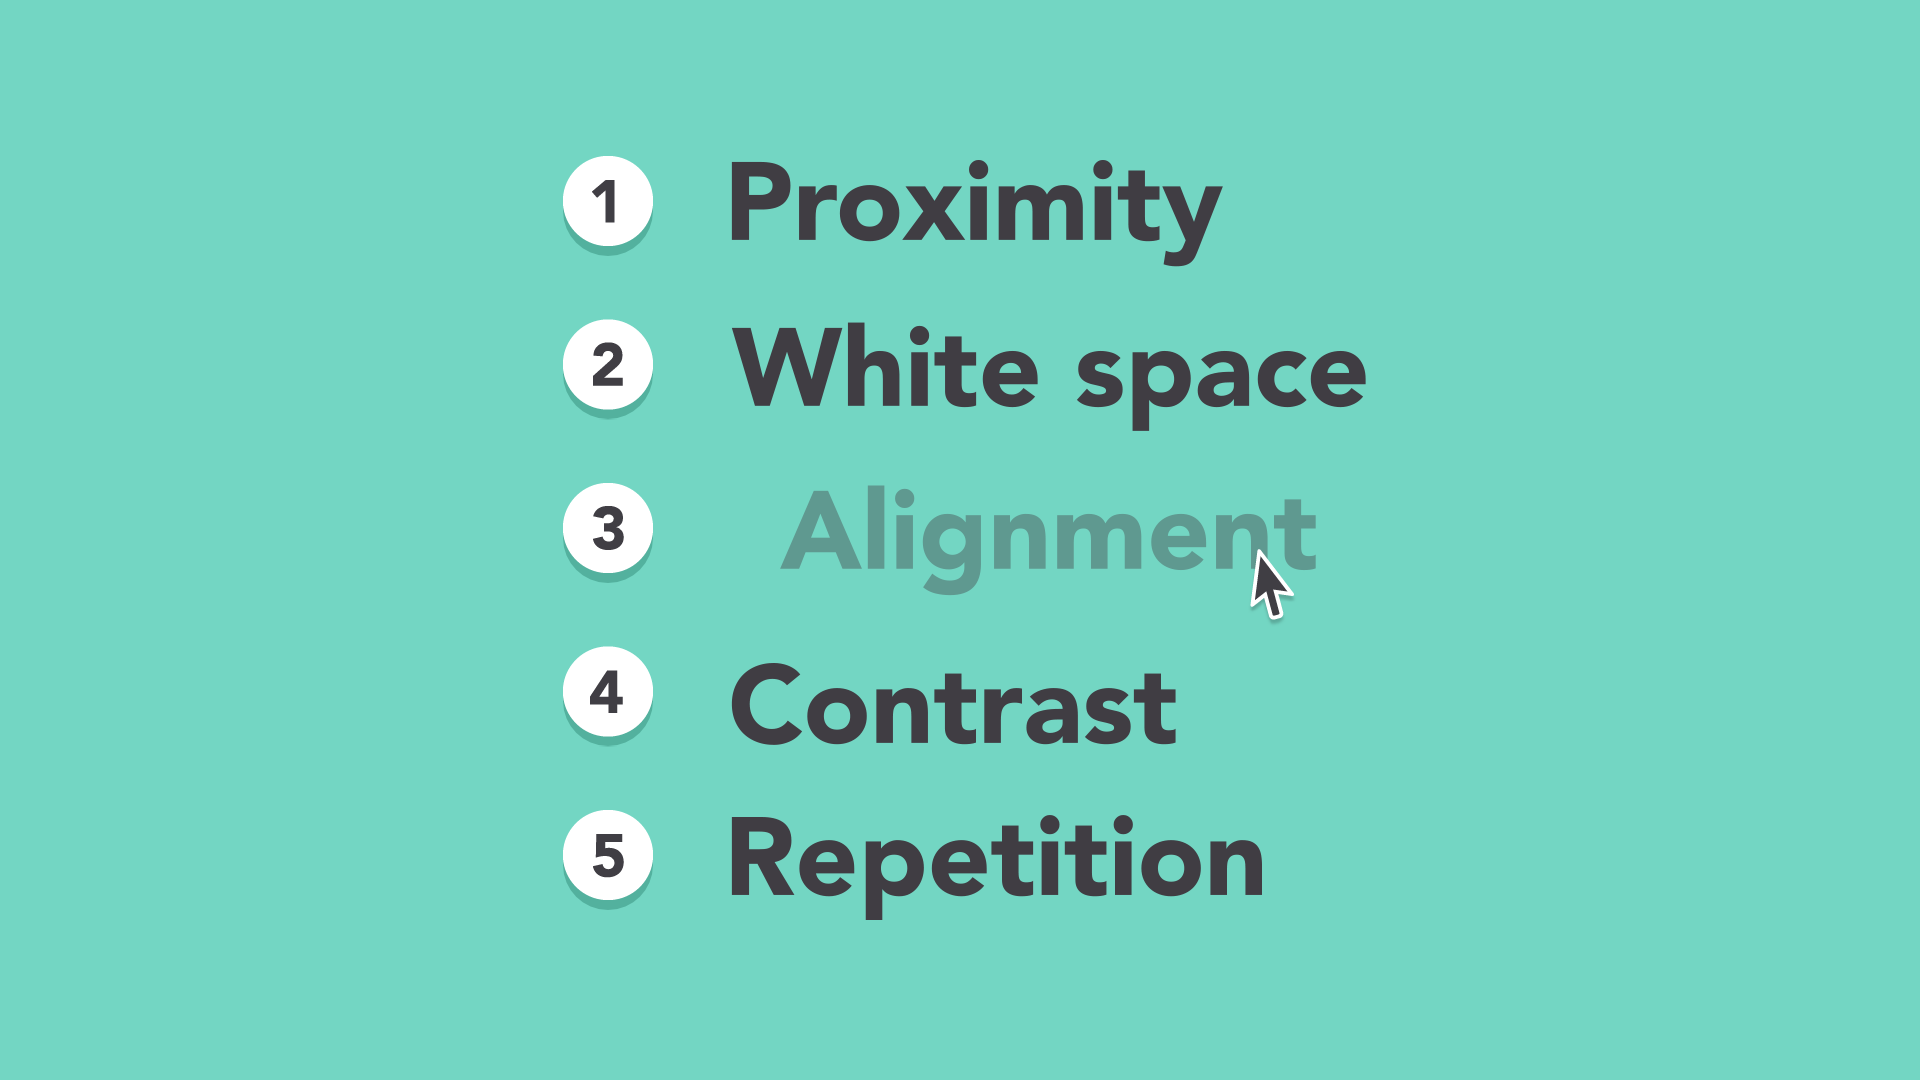 proximity, white space, alignment, contrast, repetition